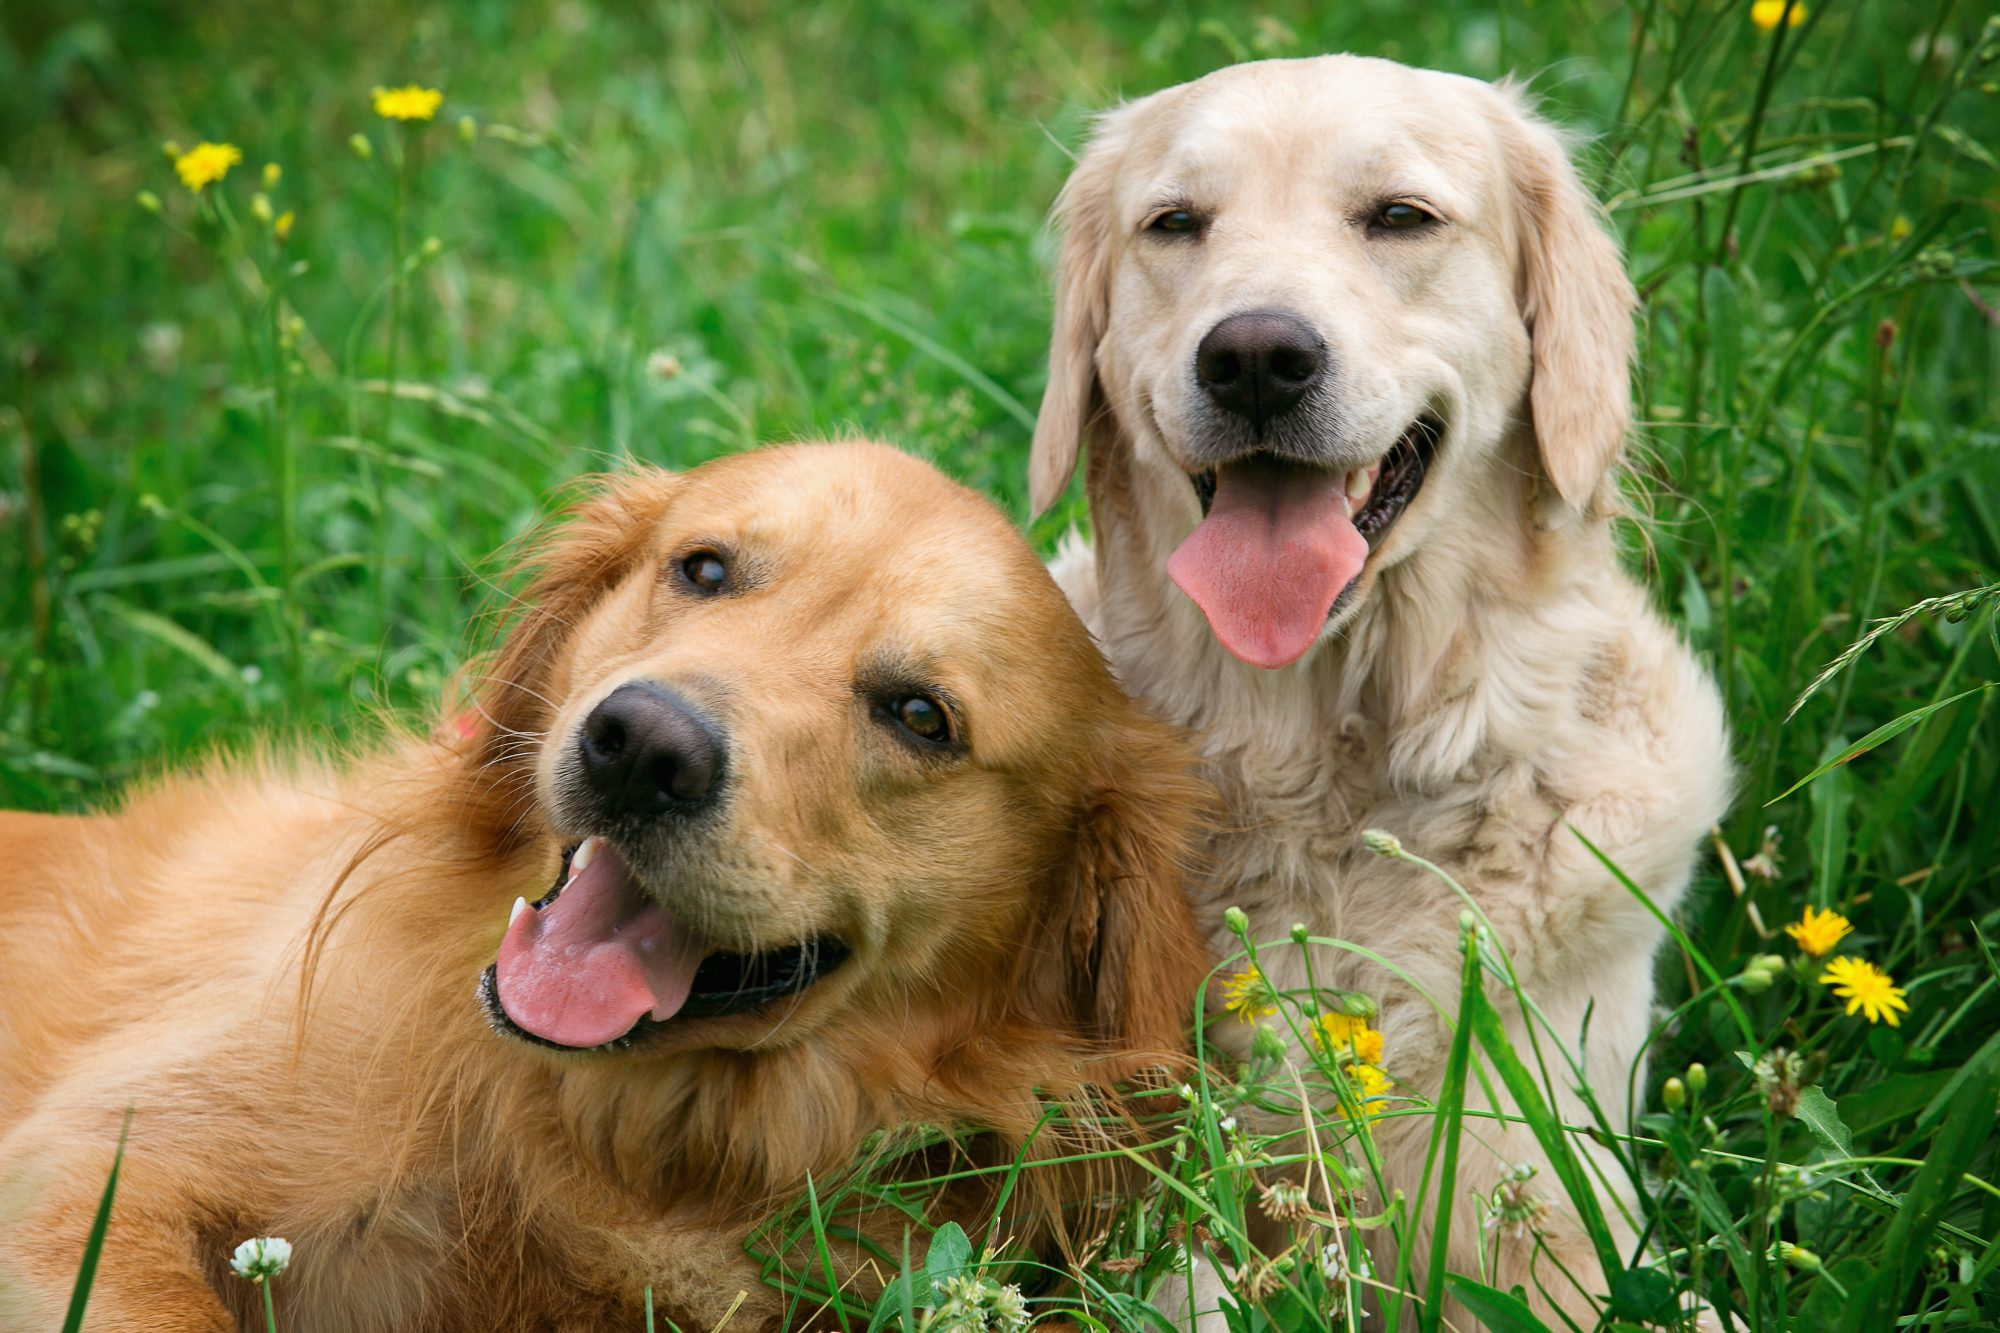 Portrait of two young dogs in grass